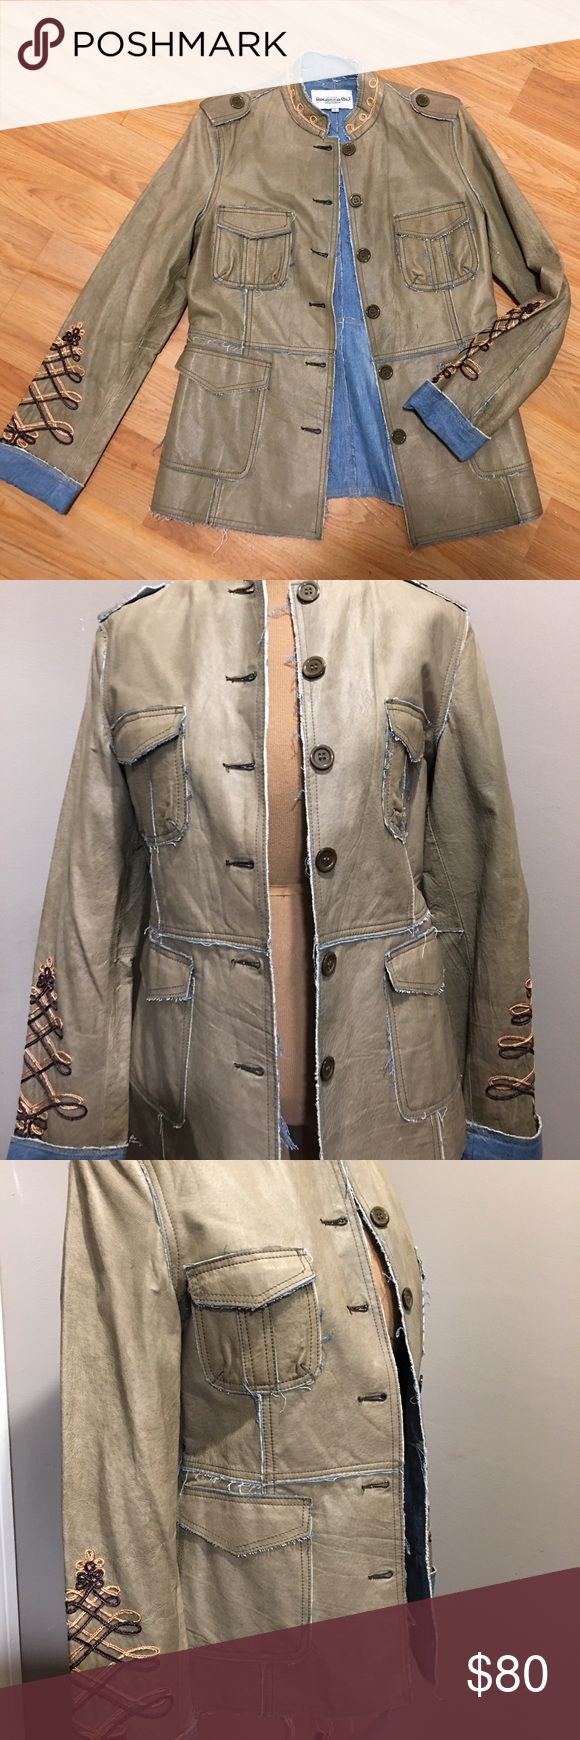 Unique Rebecca Blu Custom Leather & Denim Jacket L New without tags never worn very rare unique jacket in light olive Army green lambskin genuine leather with a thin blue denim lining size large shoulders 16.5 bust 38 sleeve 24 length 26 ...  REASONABLE OFFERS WELCOME 🌻 Rebecca Blu Boutique Quality Jackets & Coats Jean Jackets